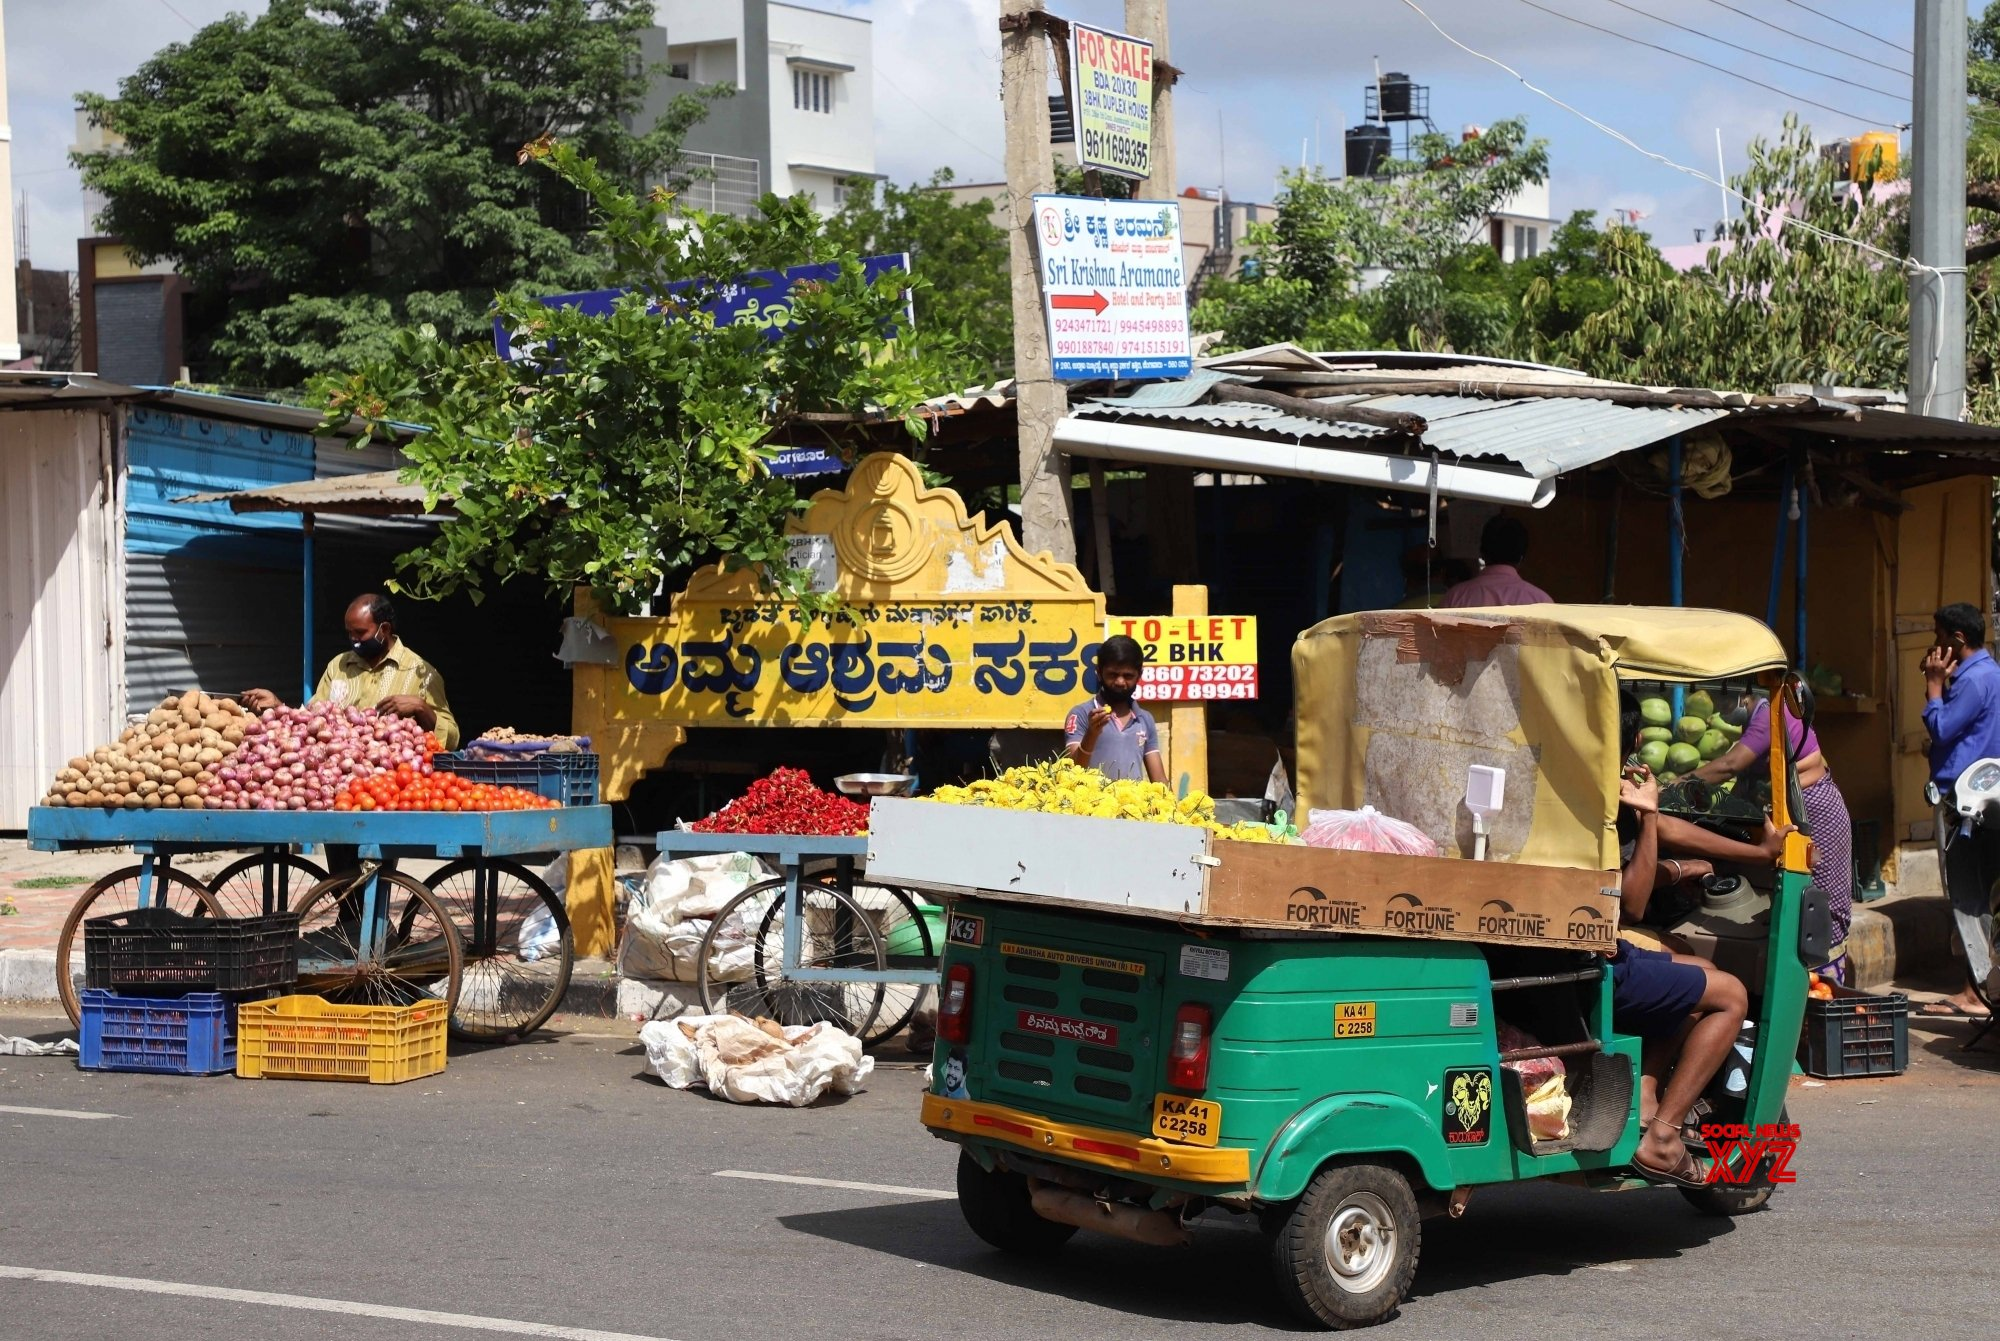 Bengaluru : - Public transportation auto rickshaw vehicles modified to sell vegetables, fruits and flowers due to the lockdown effect during Coronavirus lockdown - in Bengaluru. #Gallery